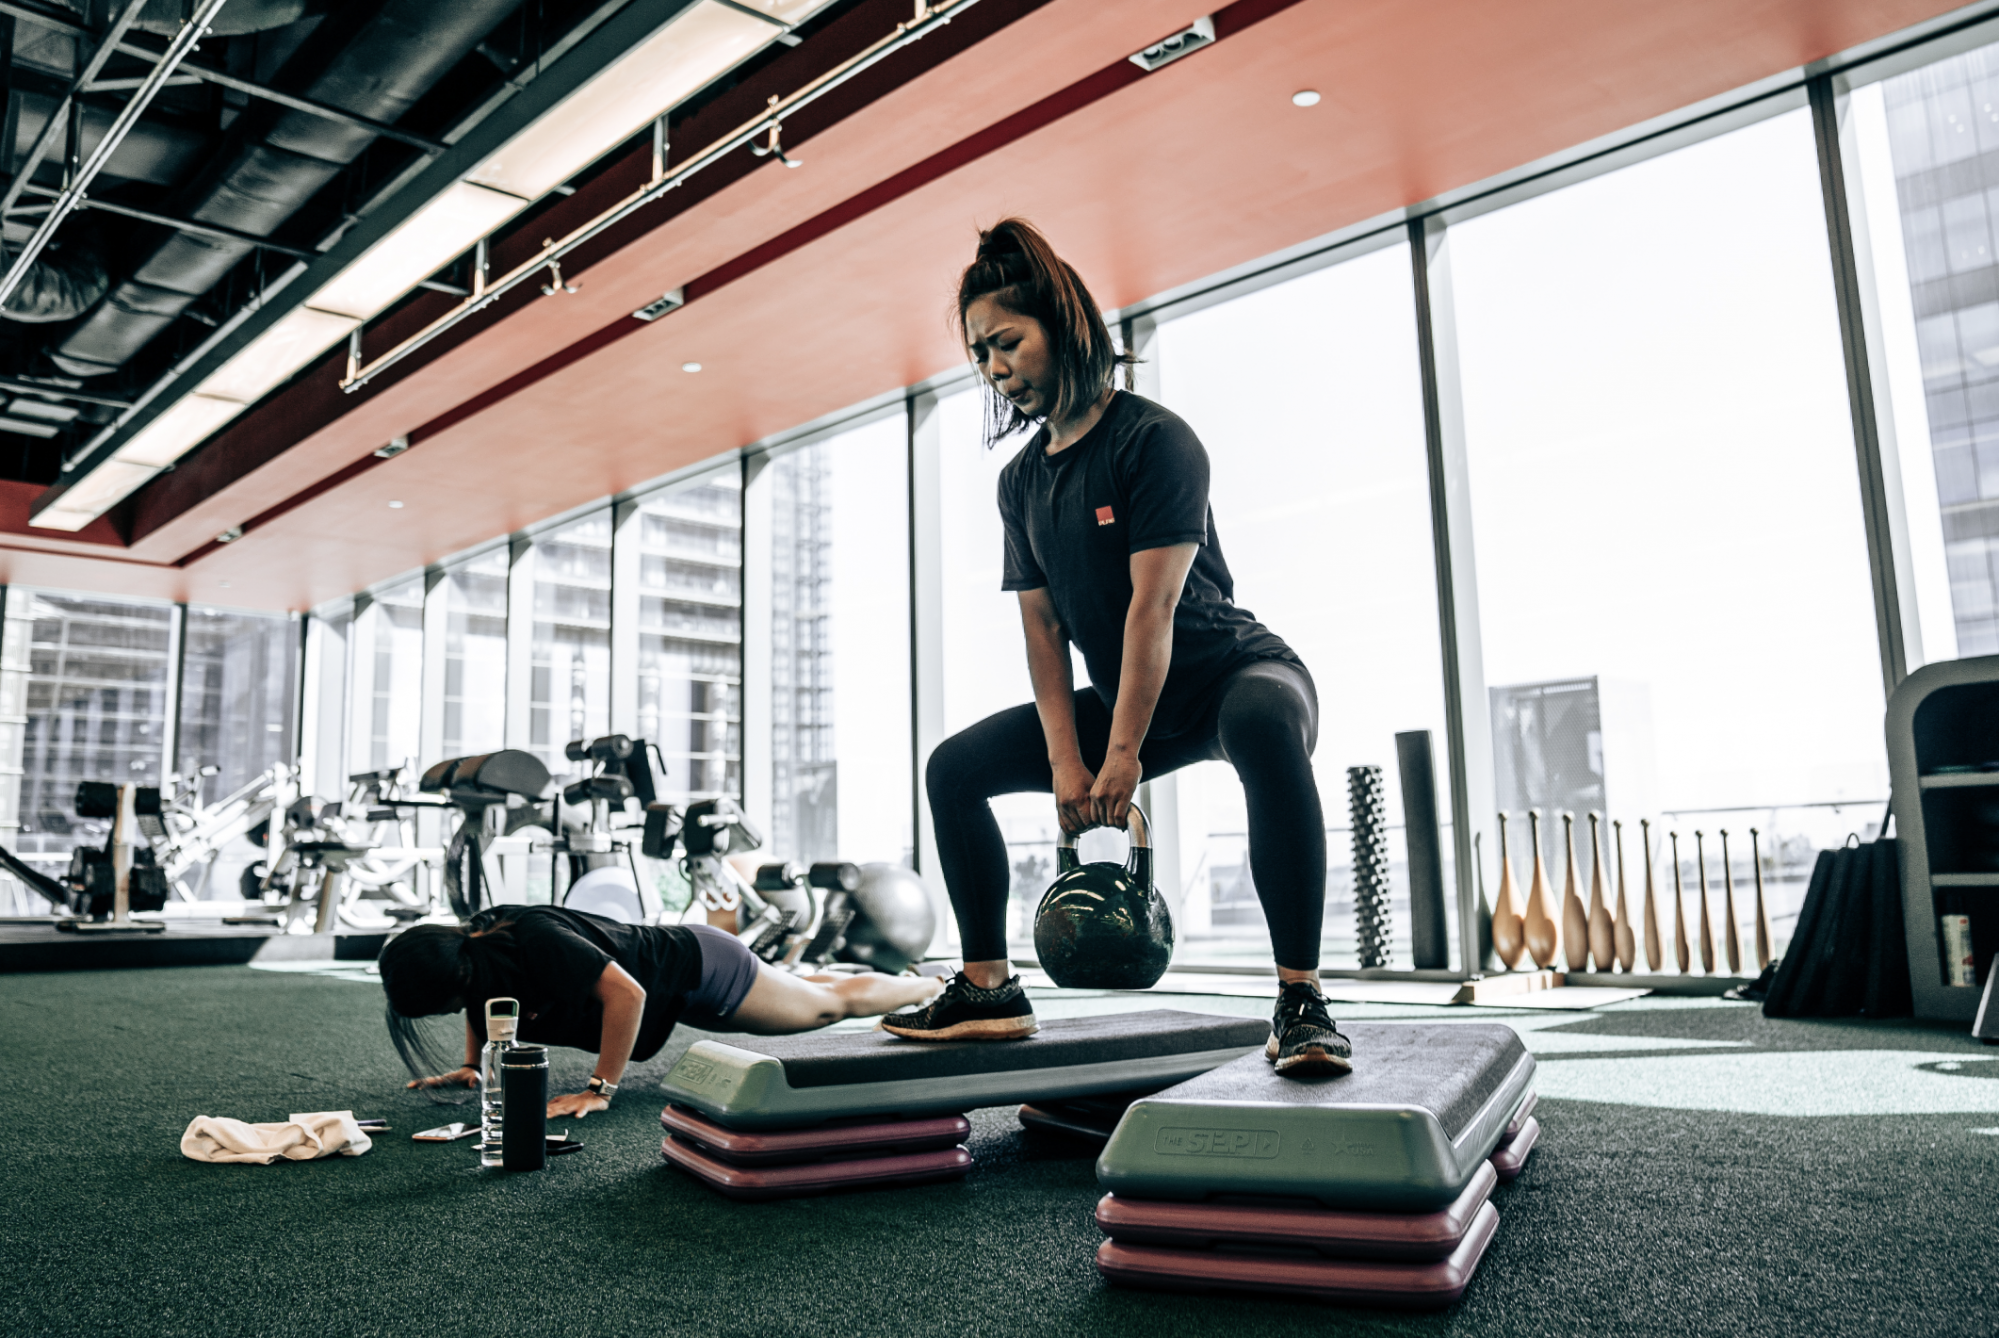 Is Your New Year's Resolution to Get Fit? This Fitness Package by Pure Group May Help